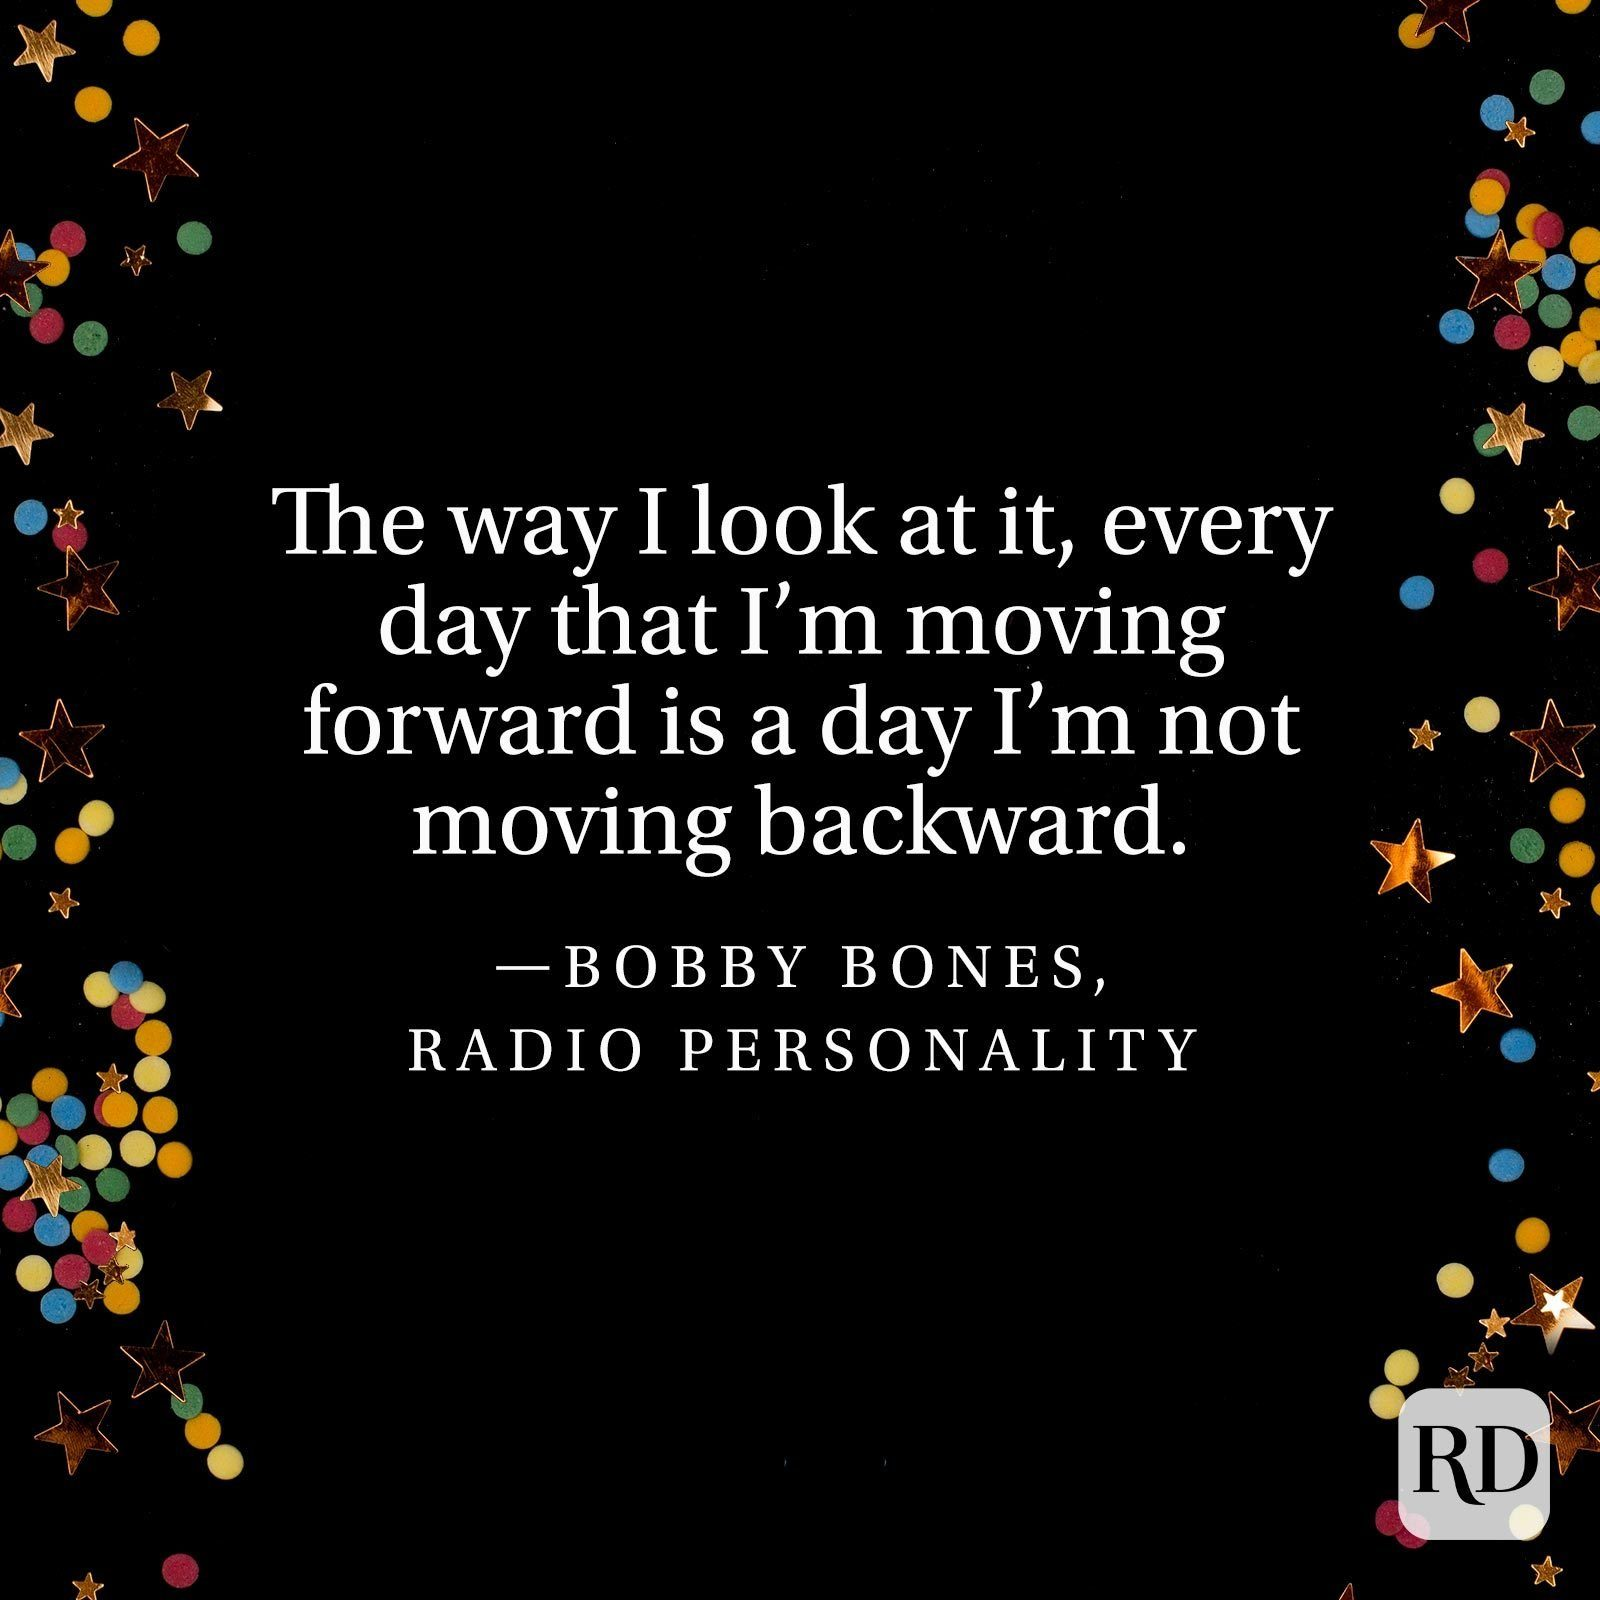 """""""The way I look at it, every day that I'm moving forward is a day I'm not moving backward."""" —Bobby Bones, radio personality"""